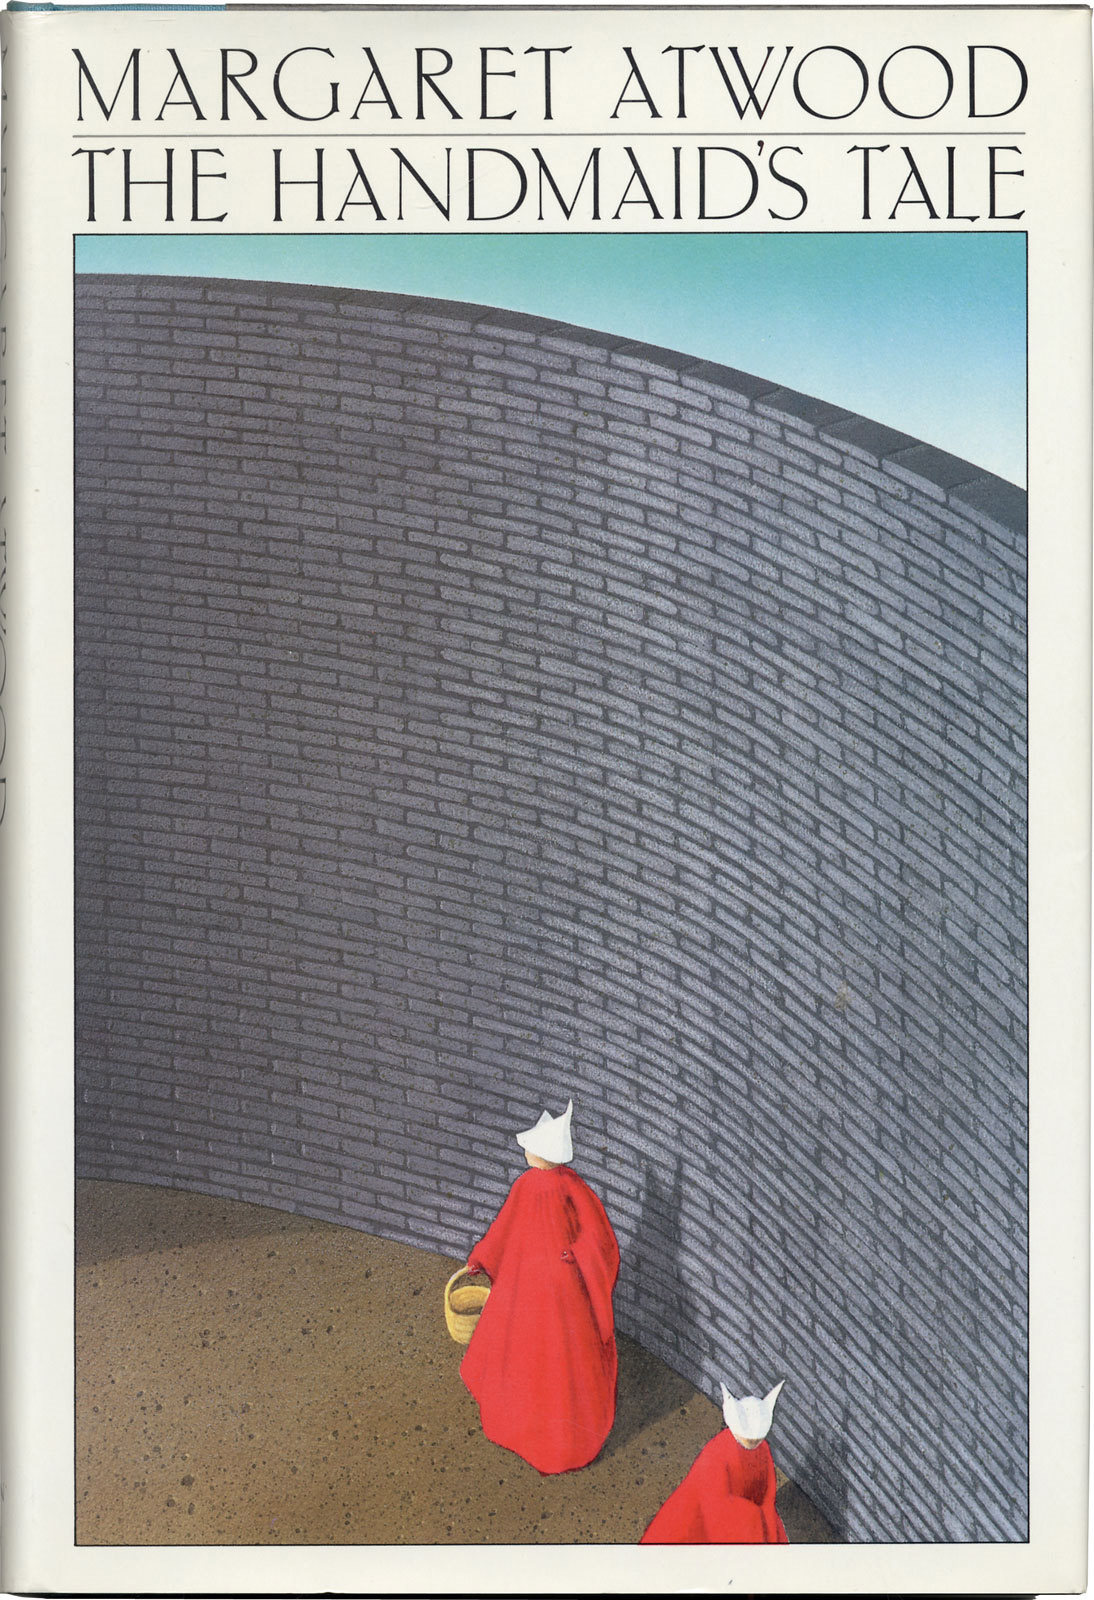 Book cover for The Handmaid's Tale in Didsbury book group